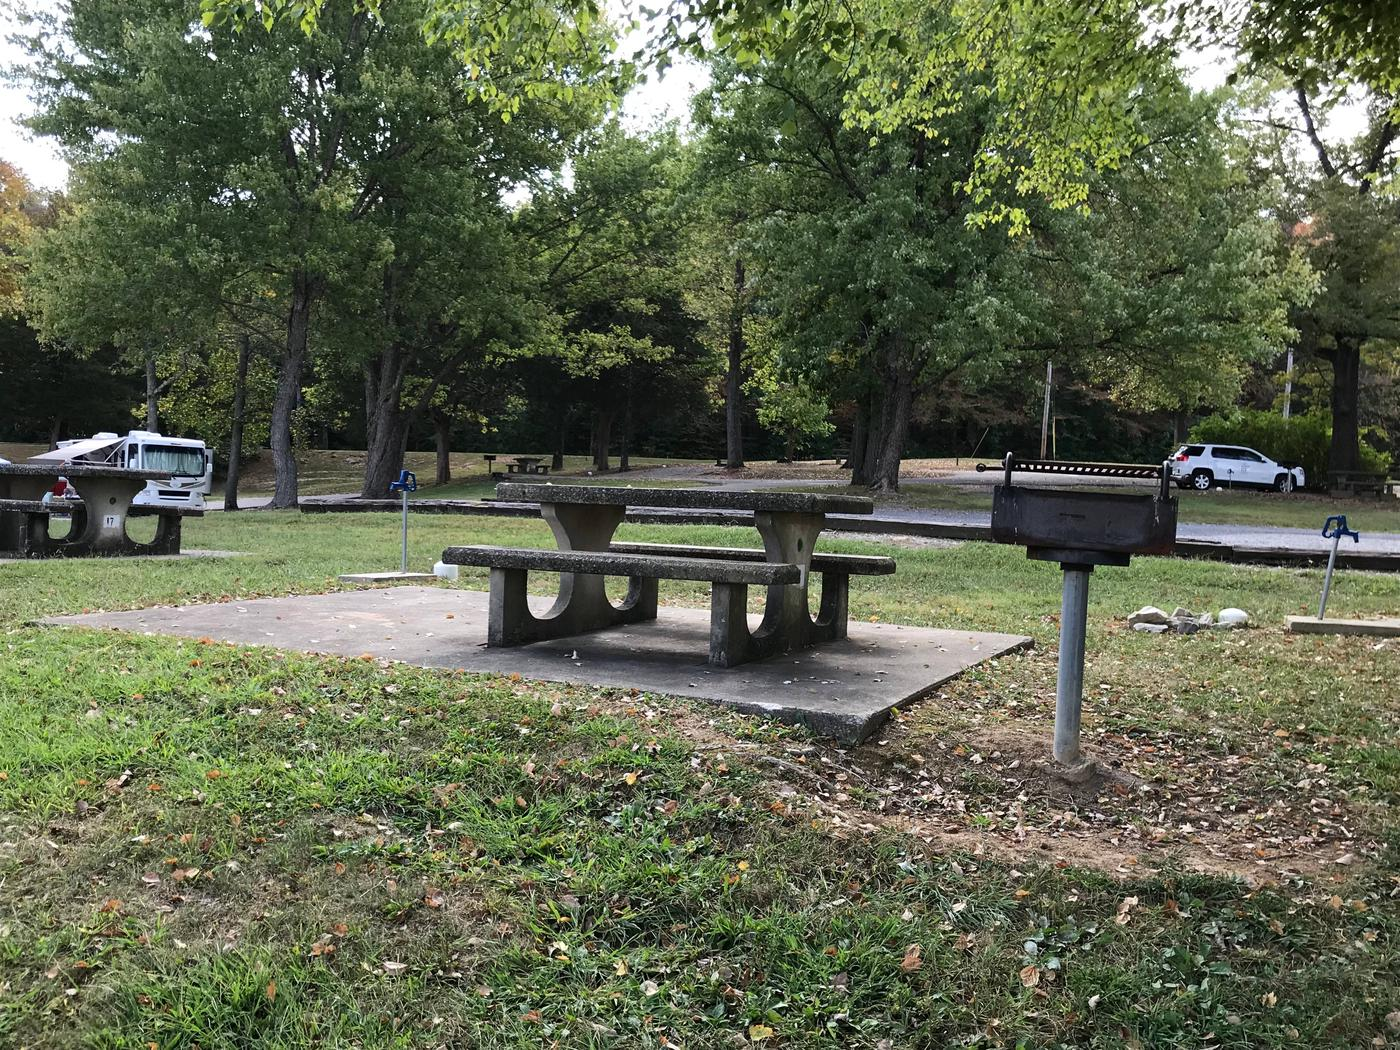 OBEY RIVER PARK SITE # 18 TABLE AND PEDESTAL GRILLOBEY RIVER PARK SITE # 18